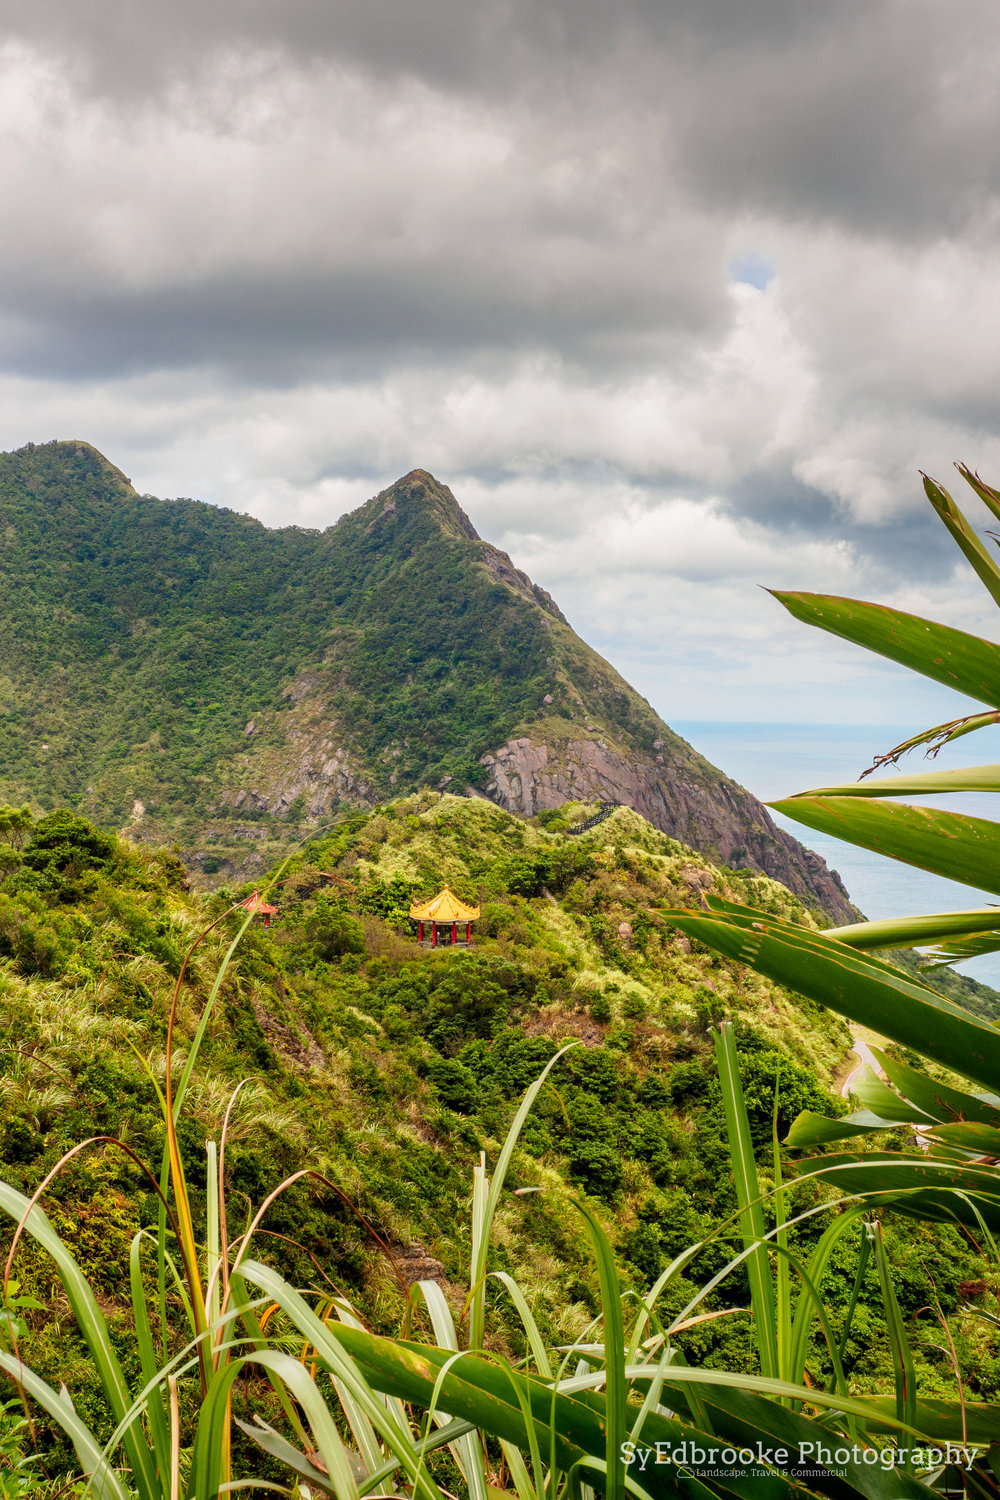 Looking out over on the first lookouts on the trail up. Mt Keelung in the background. f11, ISO 320, 1/80, 44mm